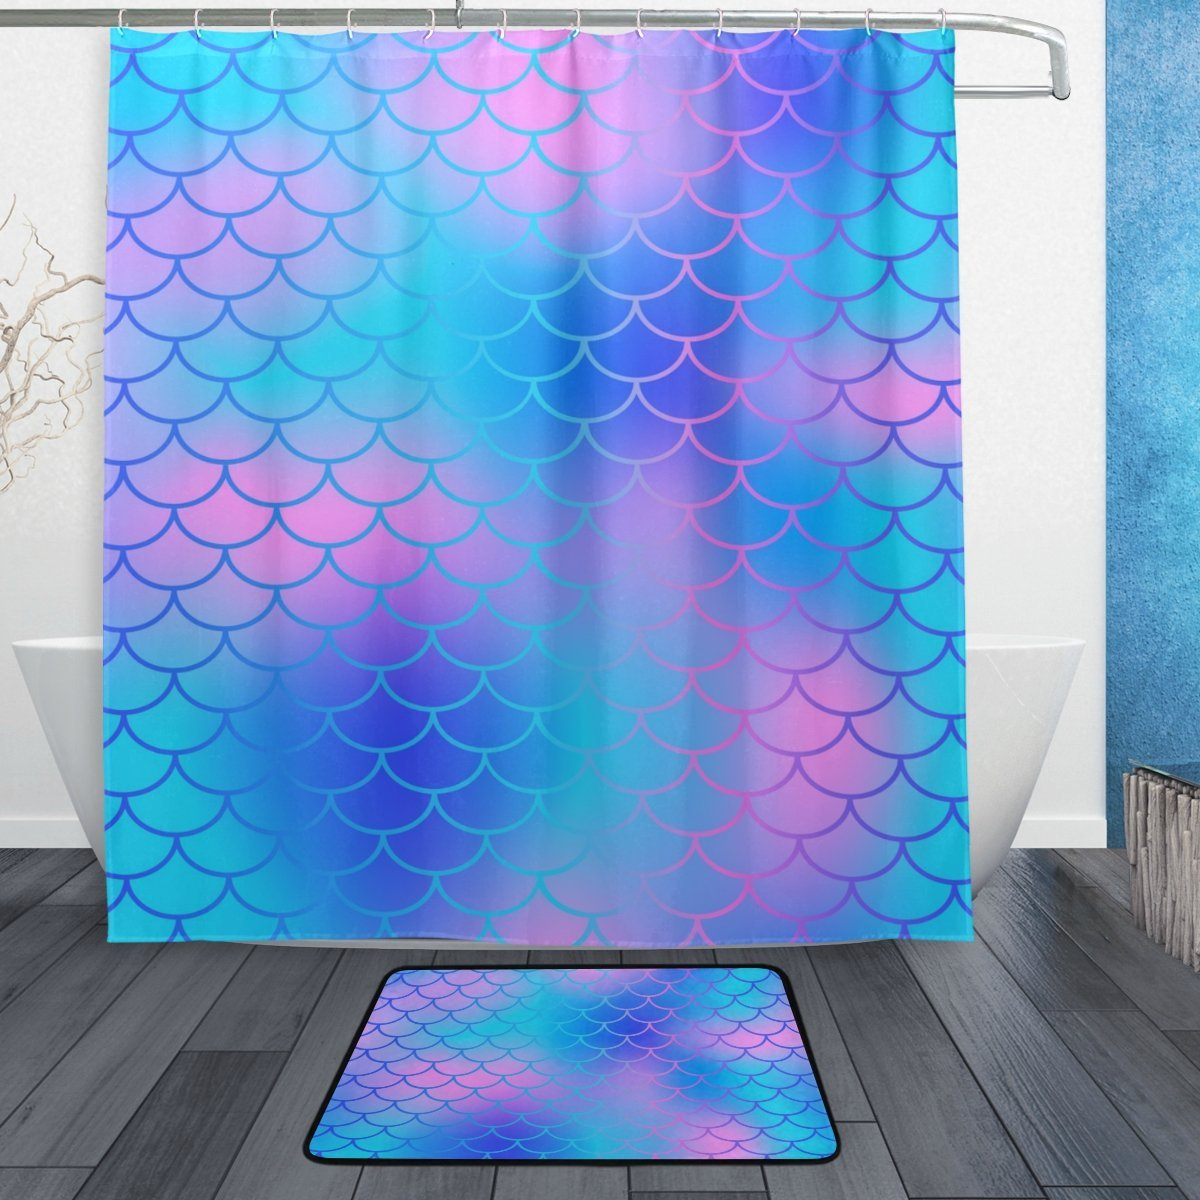 Mermaid Scale Shower Curtain My Little Nest Colorful Magic Mermaid Fish Scale Pattern Shower Curtain Set Bathroom Decor Waterproof Polyester Shower Curtain With Hooks And Foam